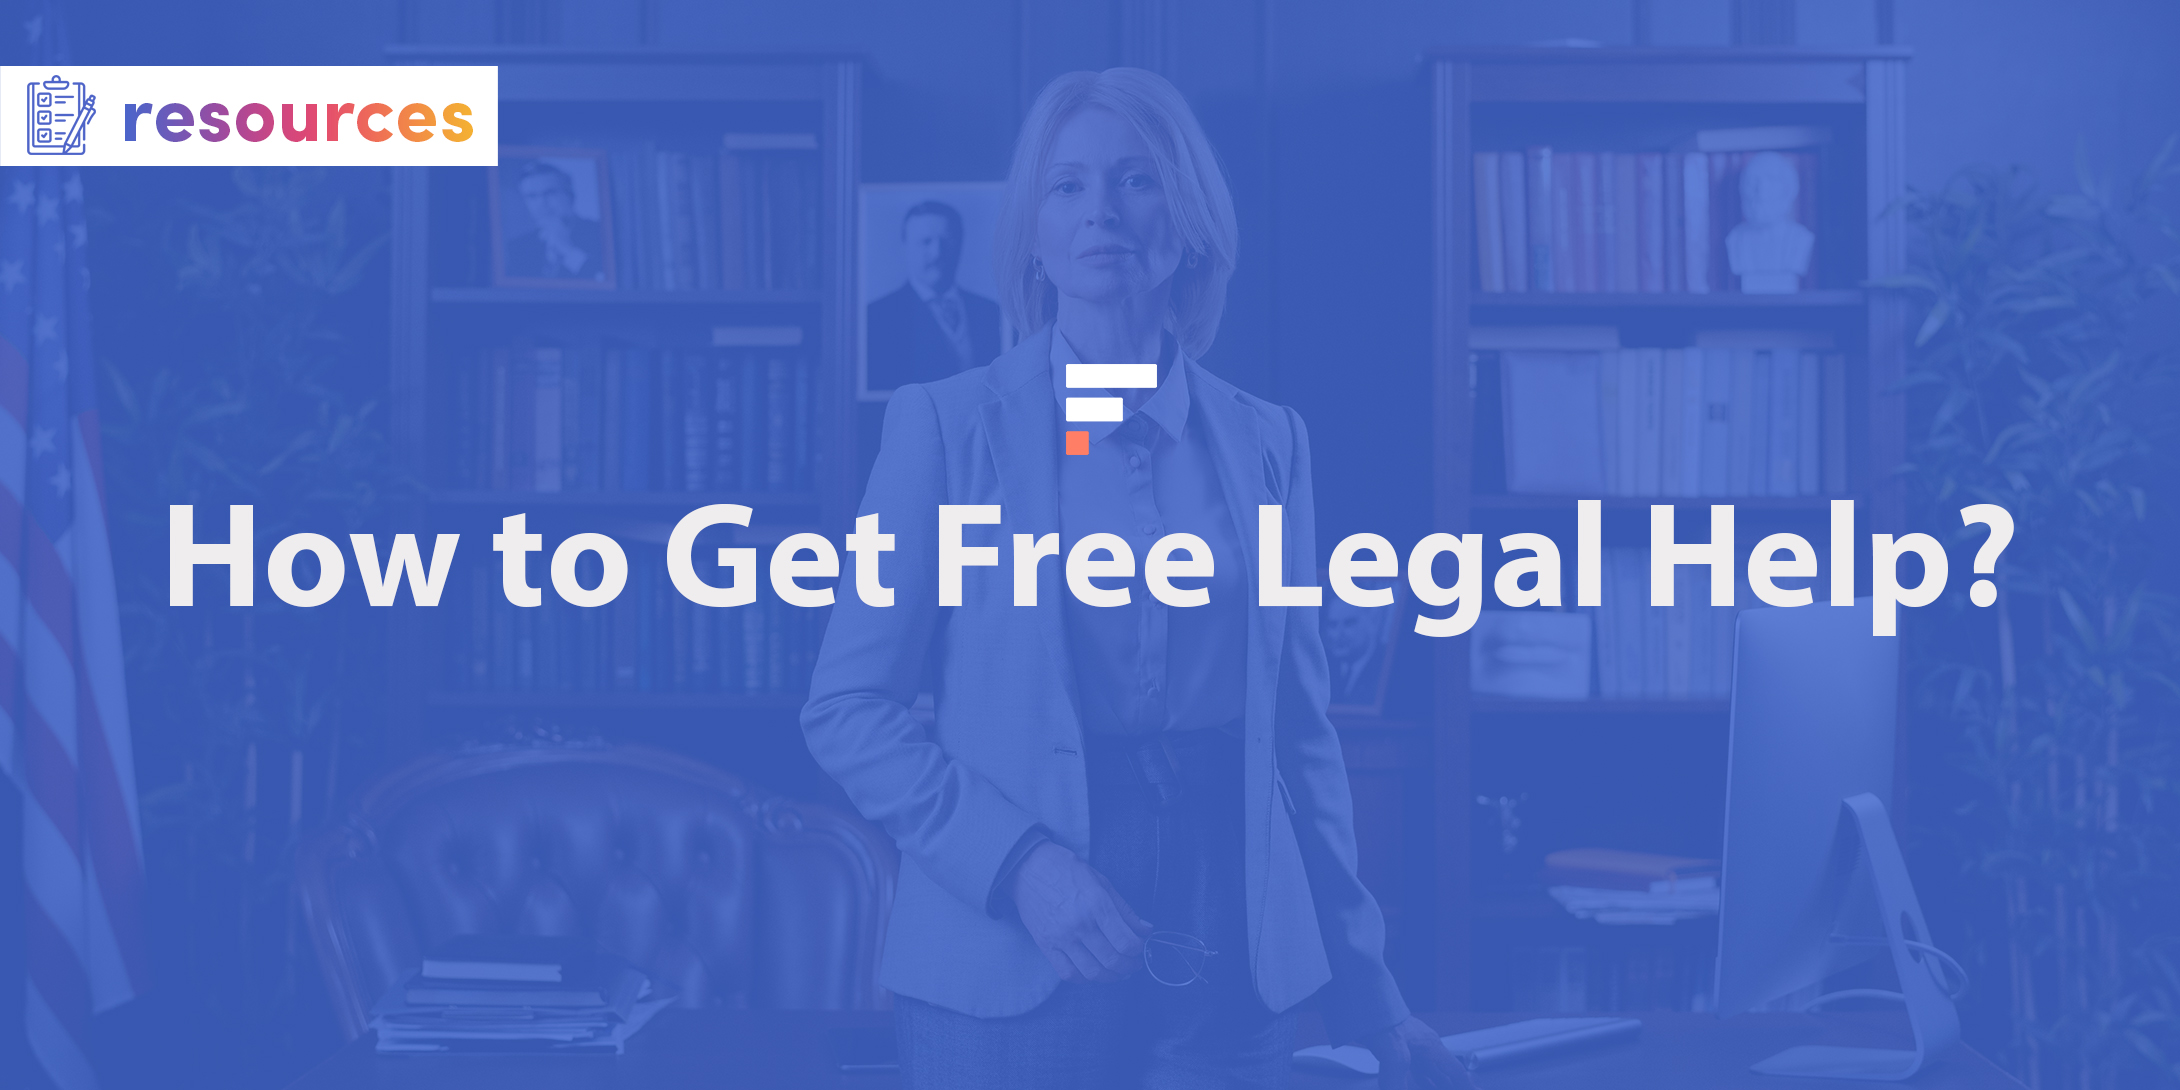 How to get free legal help